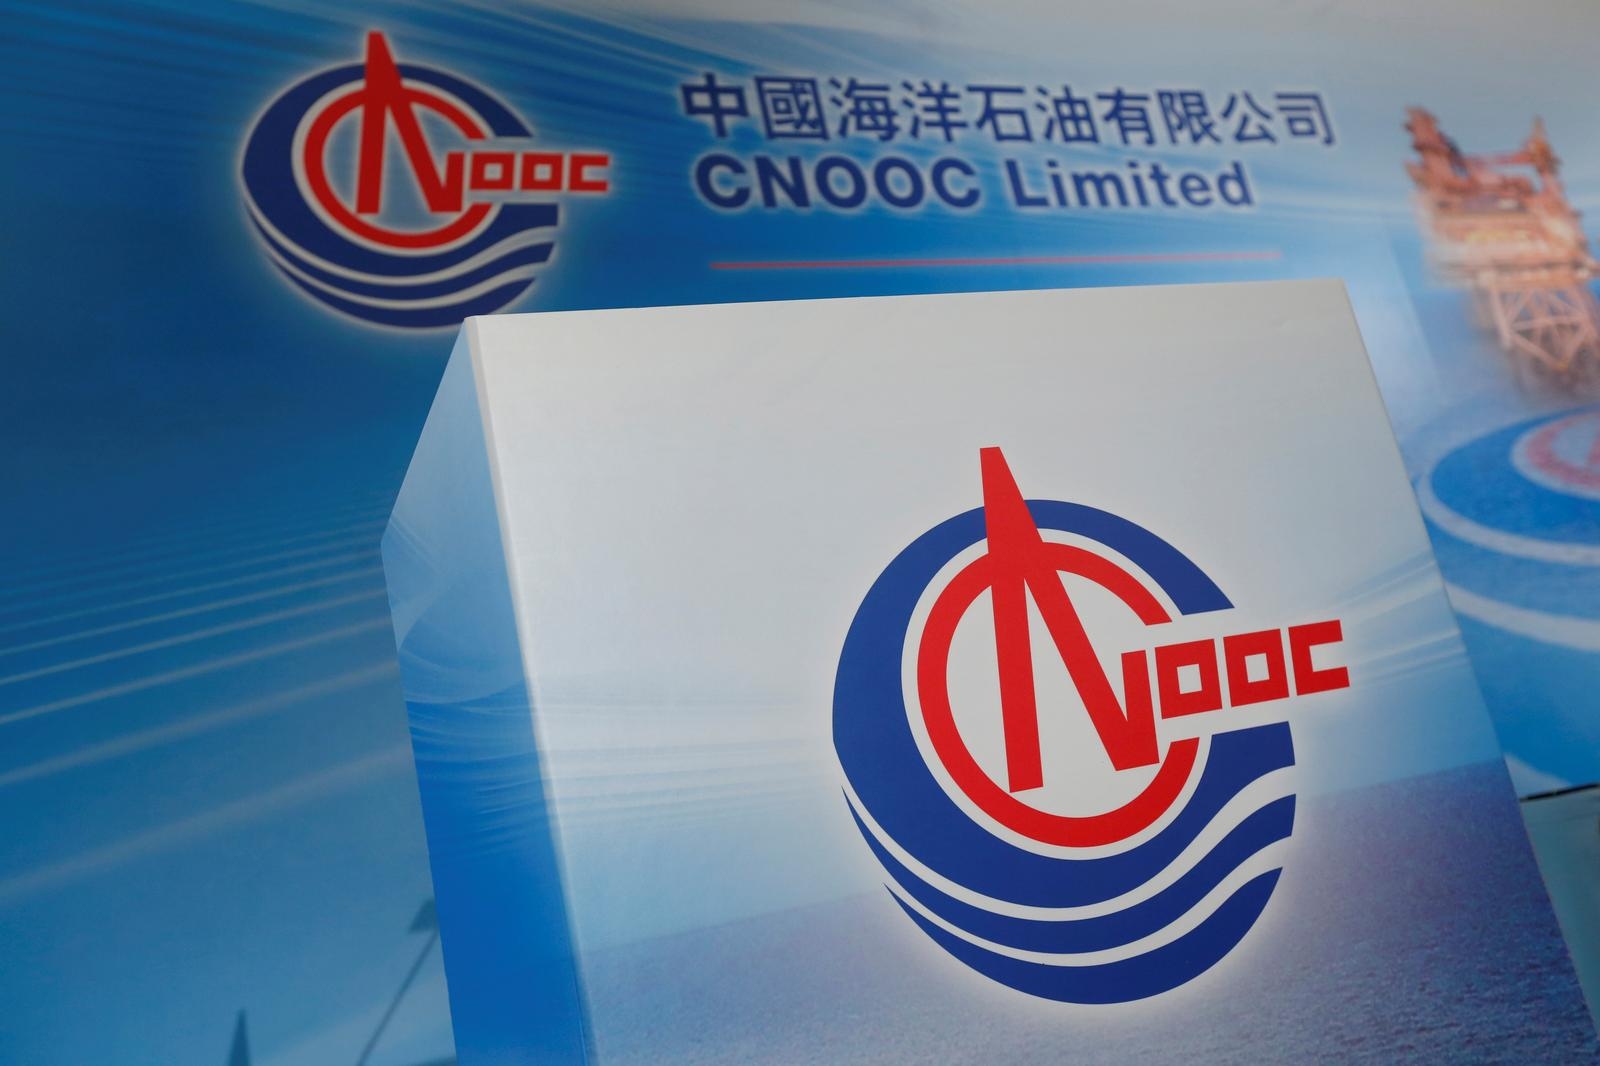 Logos of China National Offshore Oil Corporation (CNOOC) are displayed at a news conference on the company's interim results in Hong Kong, China March 23, 2017. Photo: Reuters